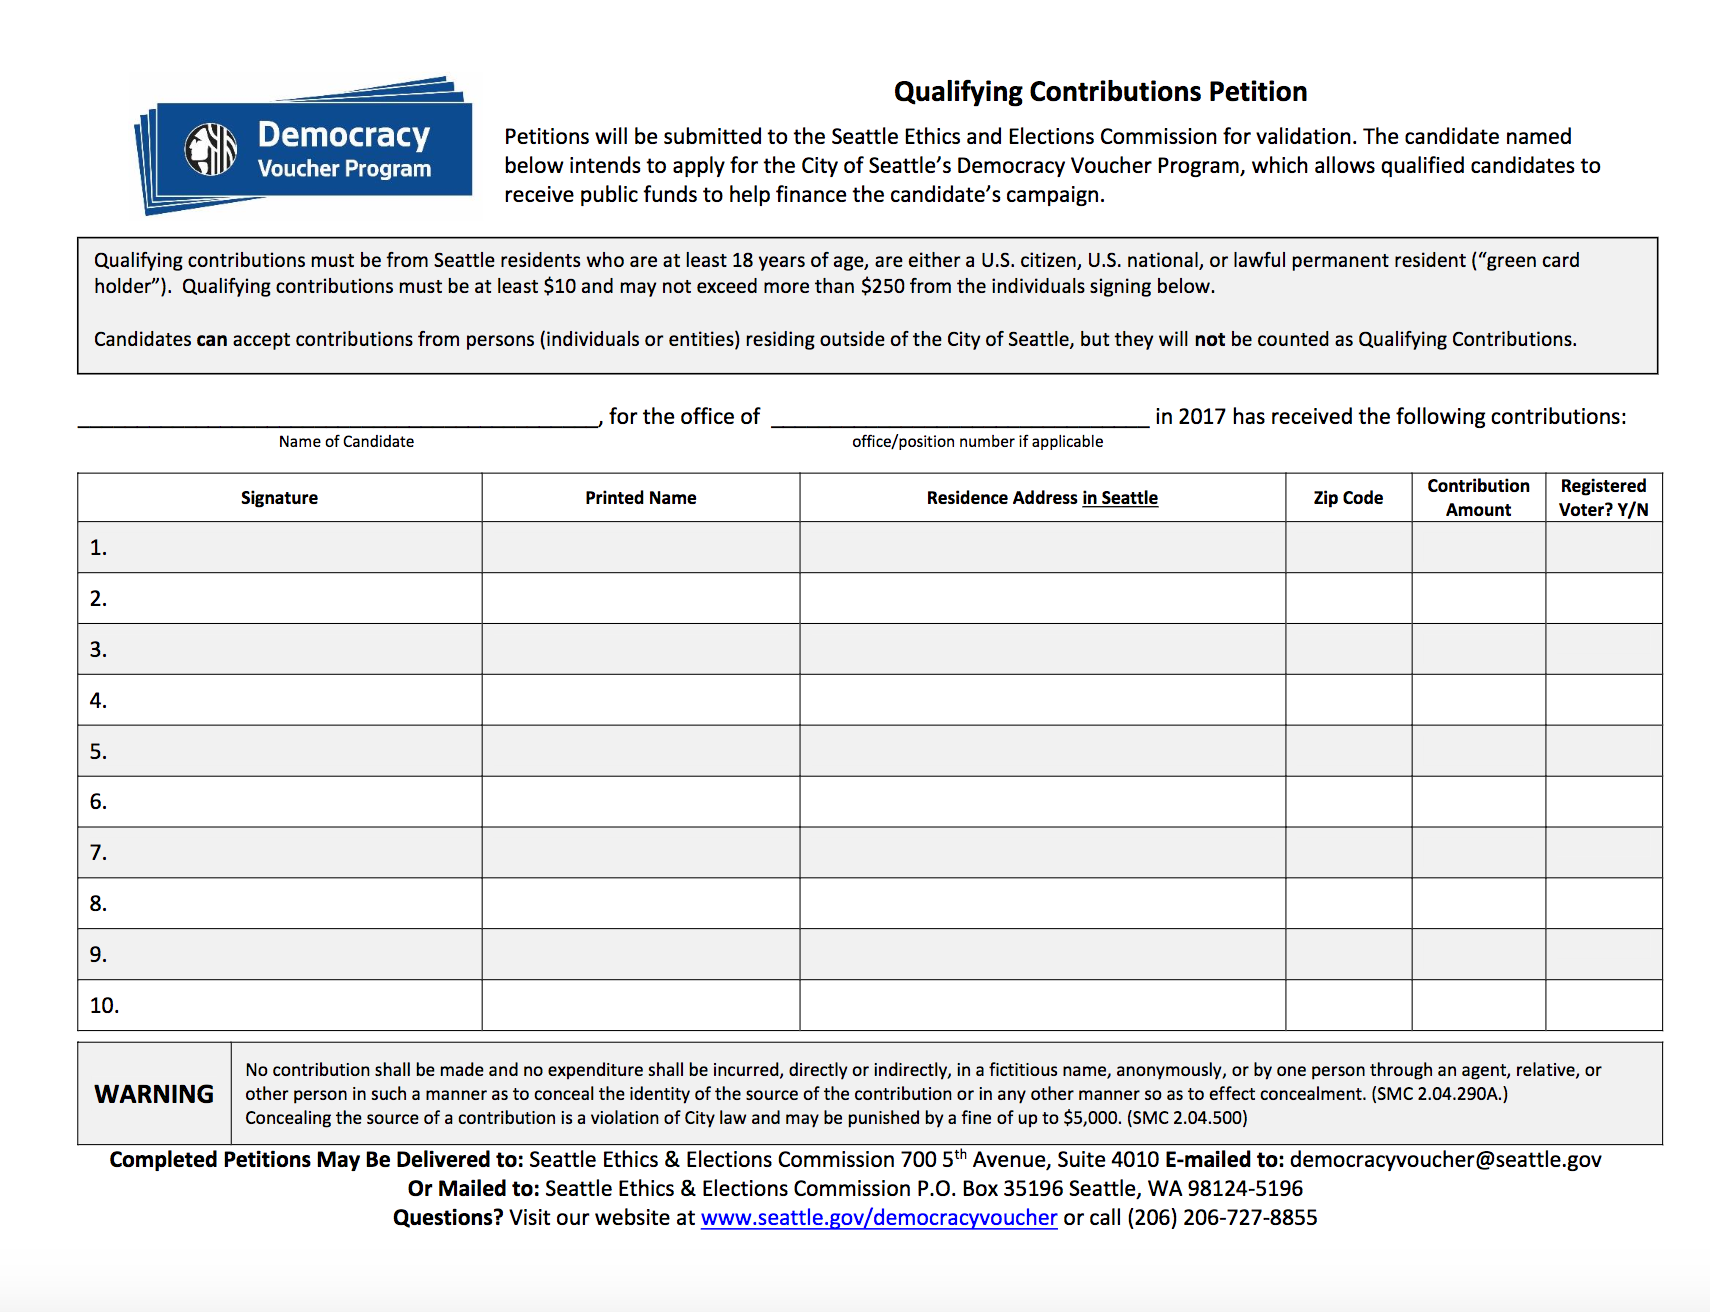 The OFFICIAL Qualifying Contribution Petition can be found at http://www.seattle.gov/Documents/Departments/EthicsElections/DemocracyVoucher/Qualifying%20Petition%2012-13-2016.pdf